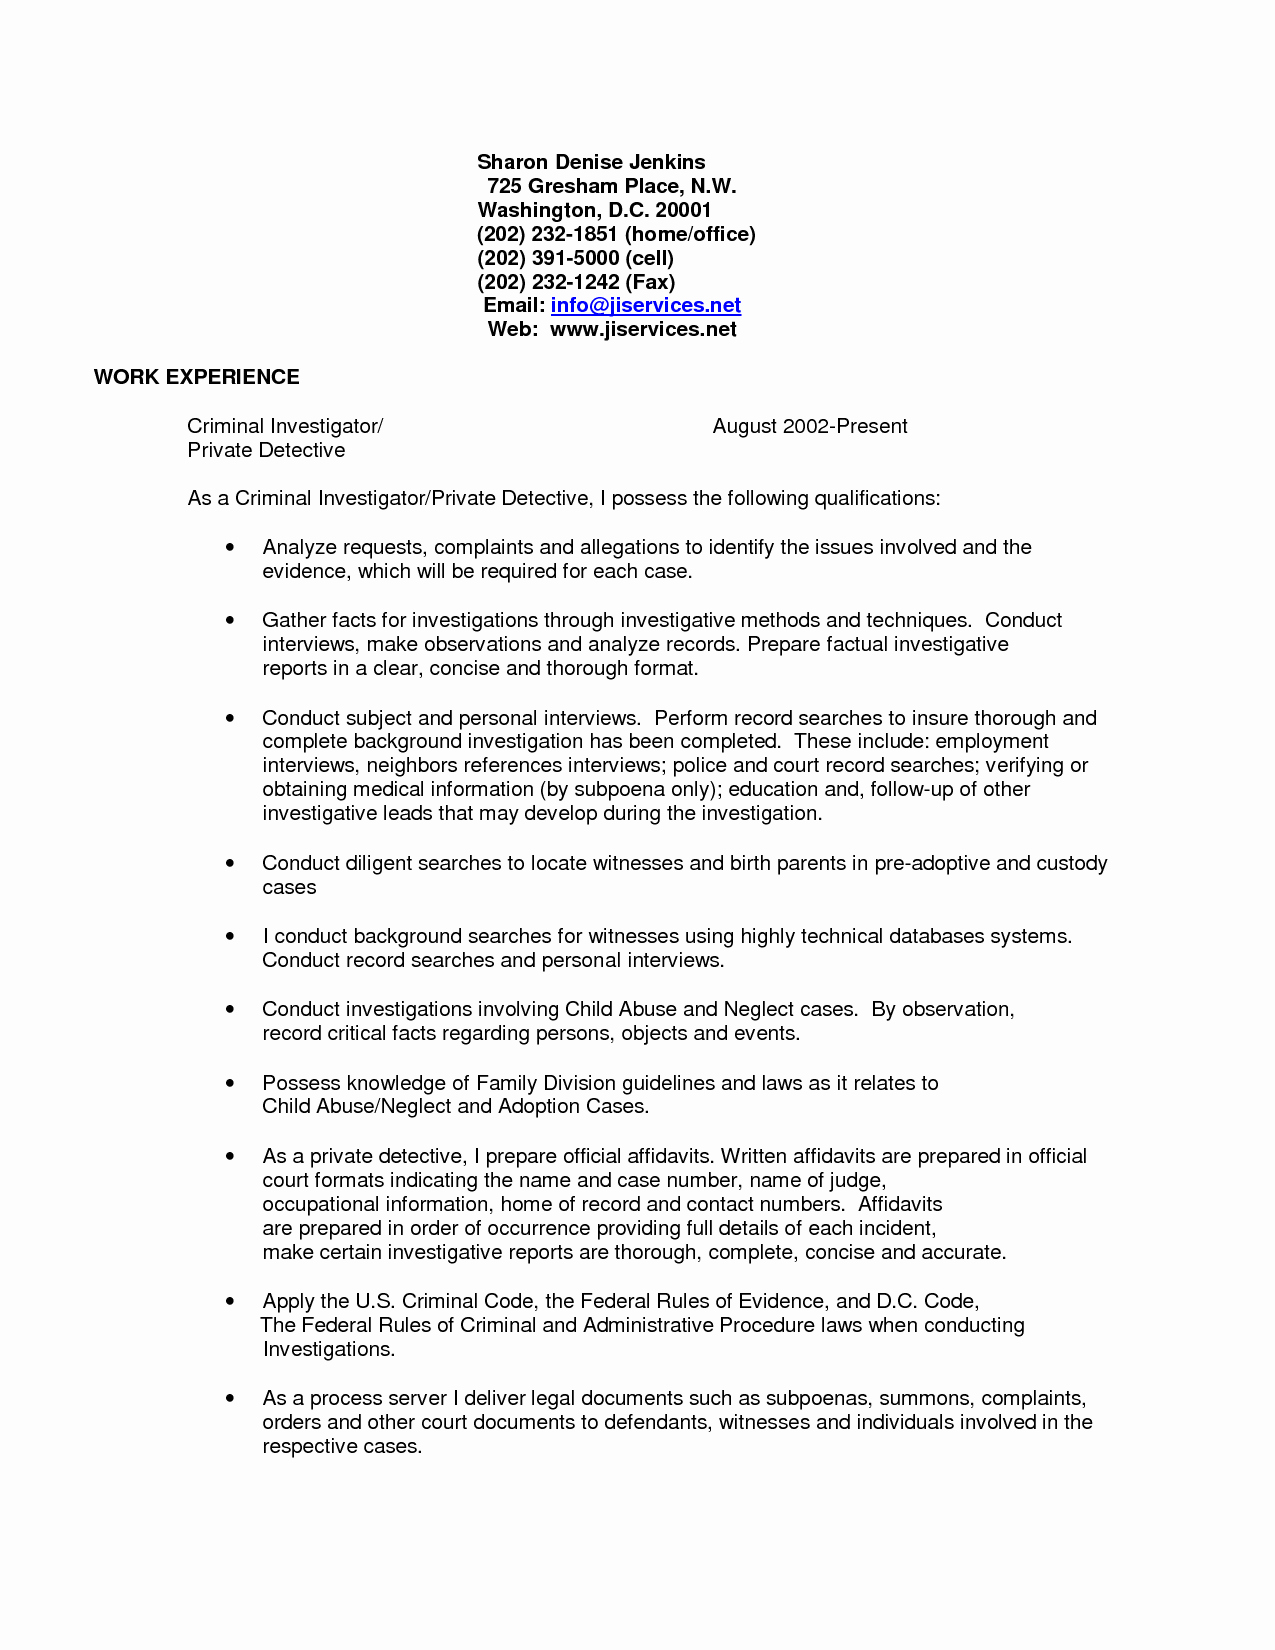 Private Investigator Report Templates Beautiful Inspirational Crime Scene Investigator Sample Resume